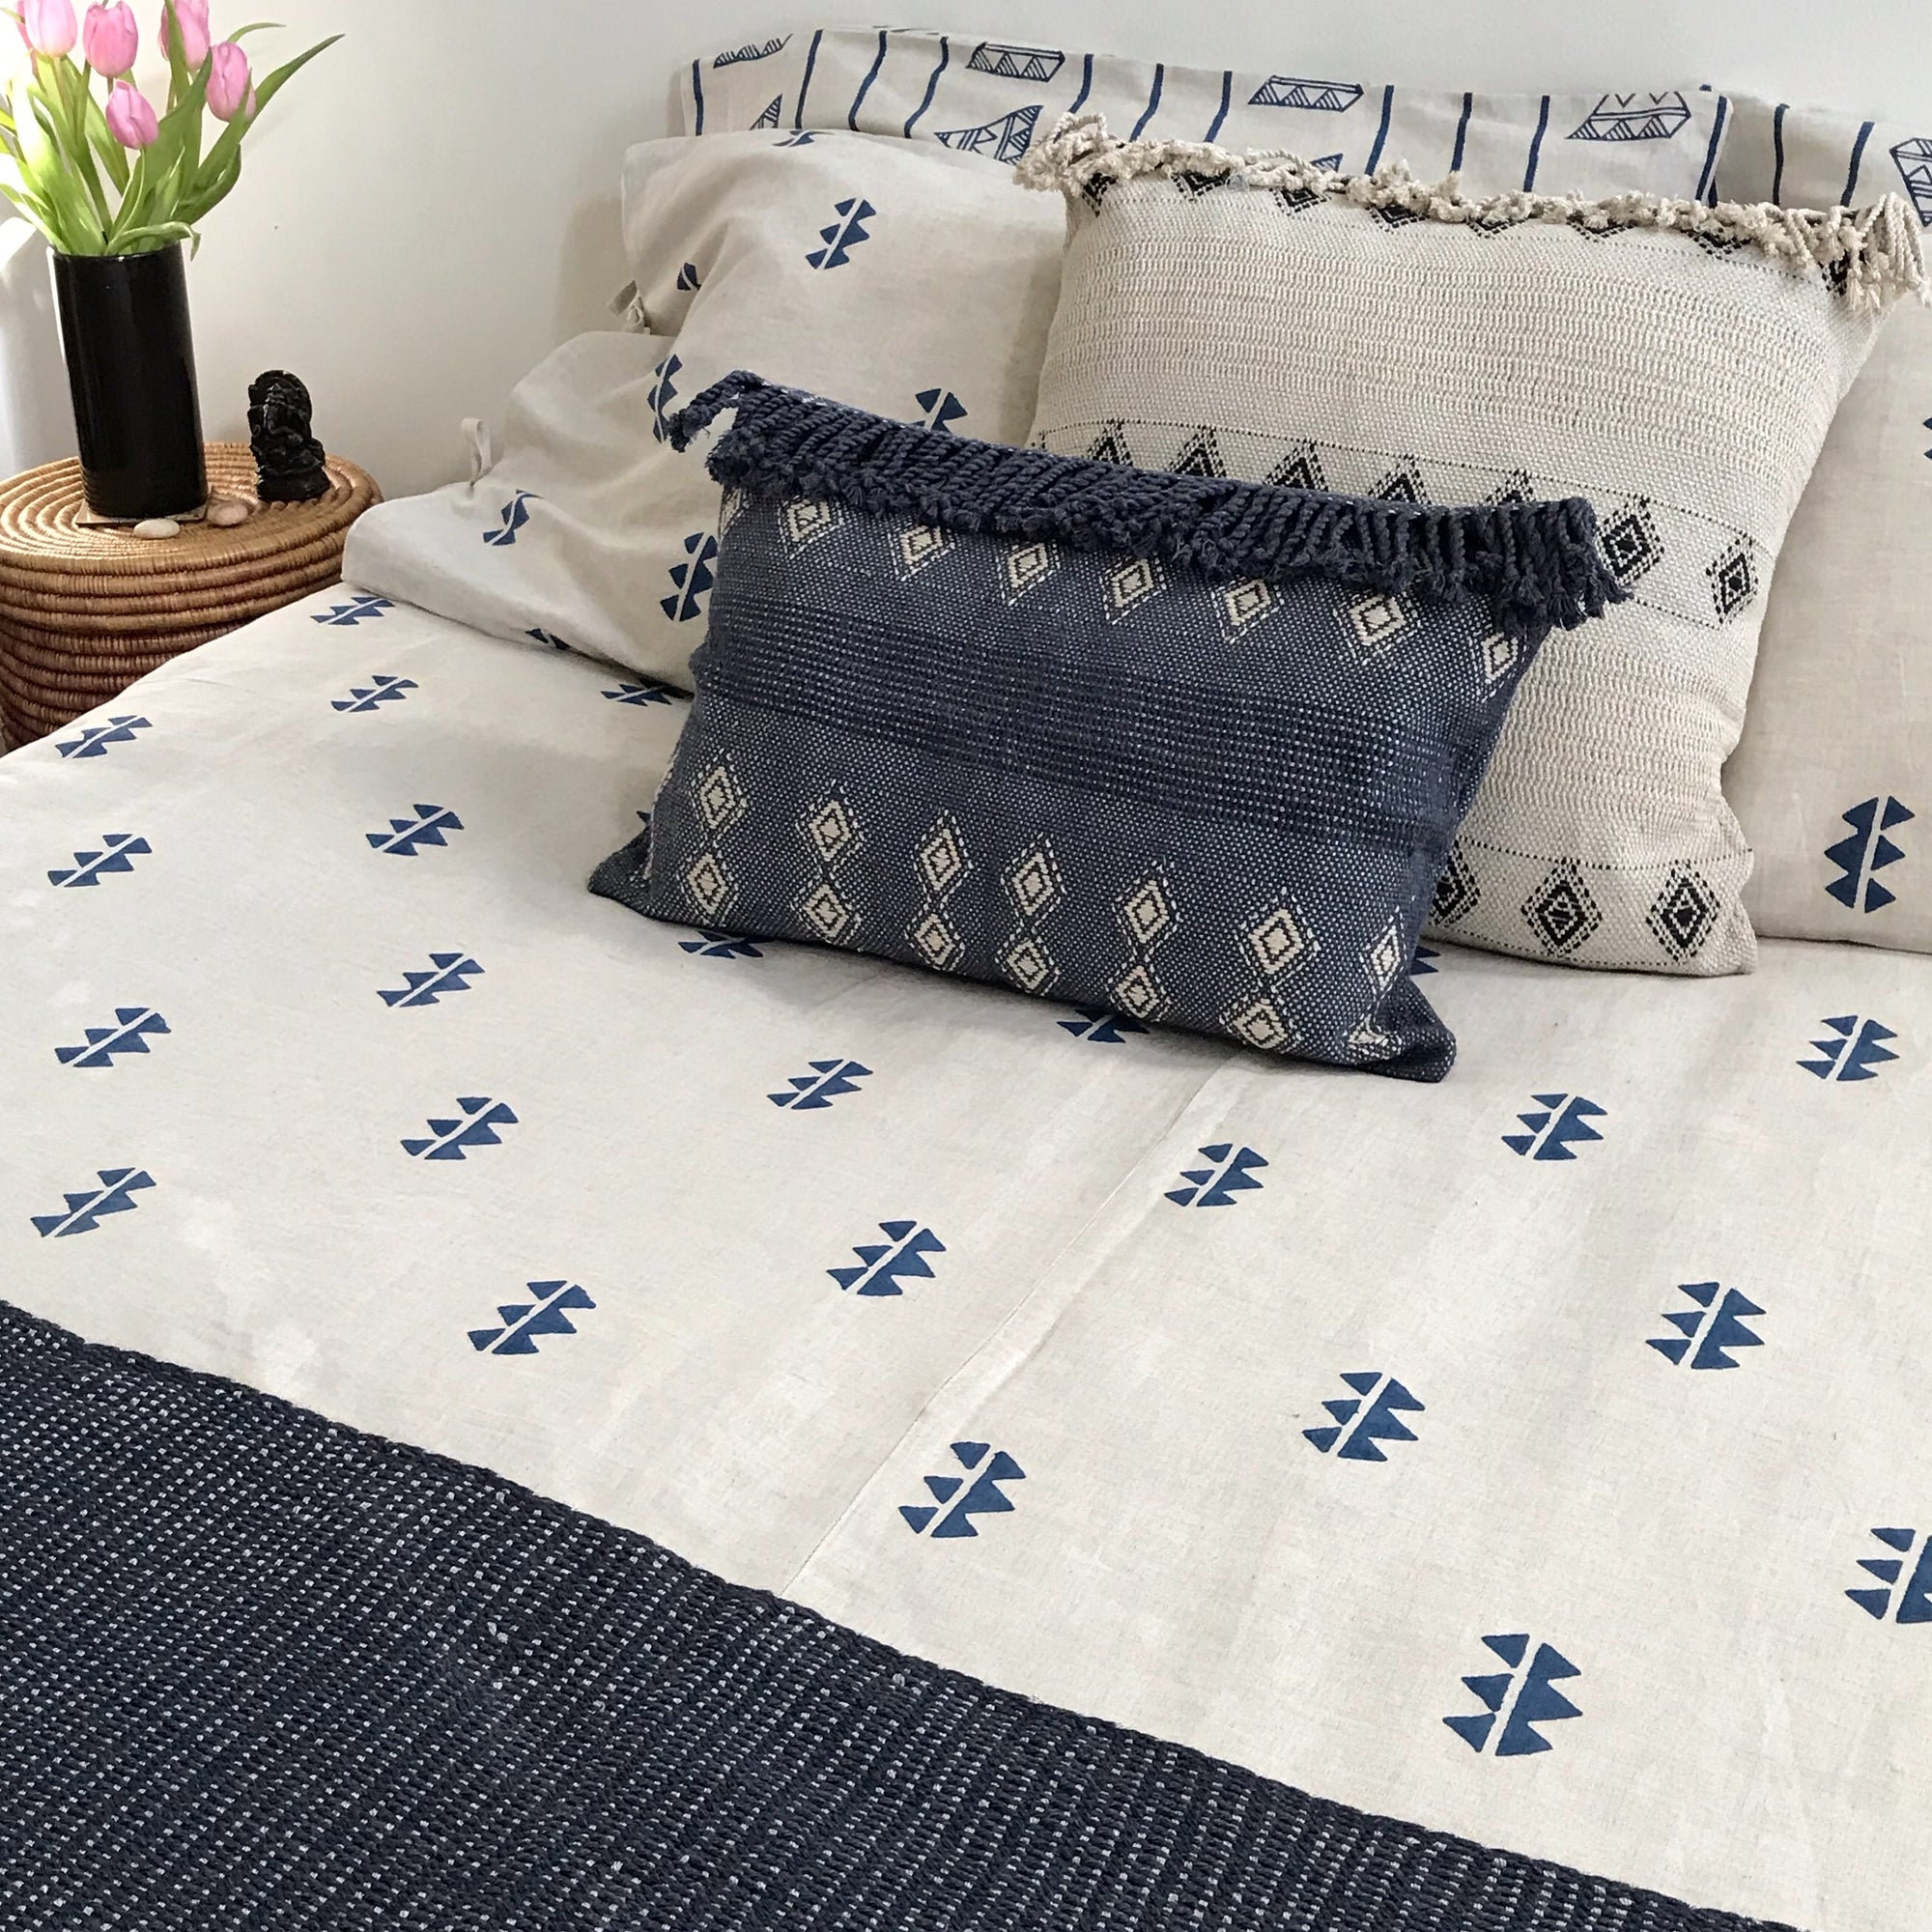 MATTER for Tilonia® Queen Duvet Set in Kangura Spikes in Blue